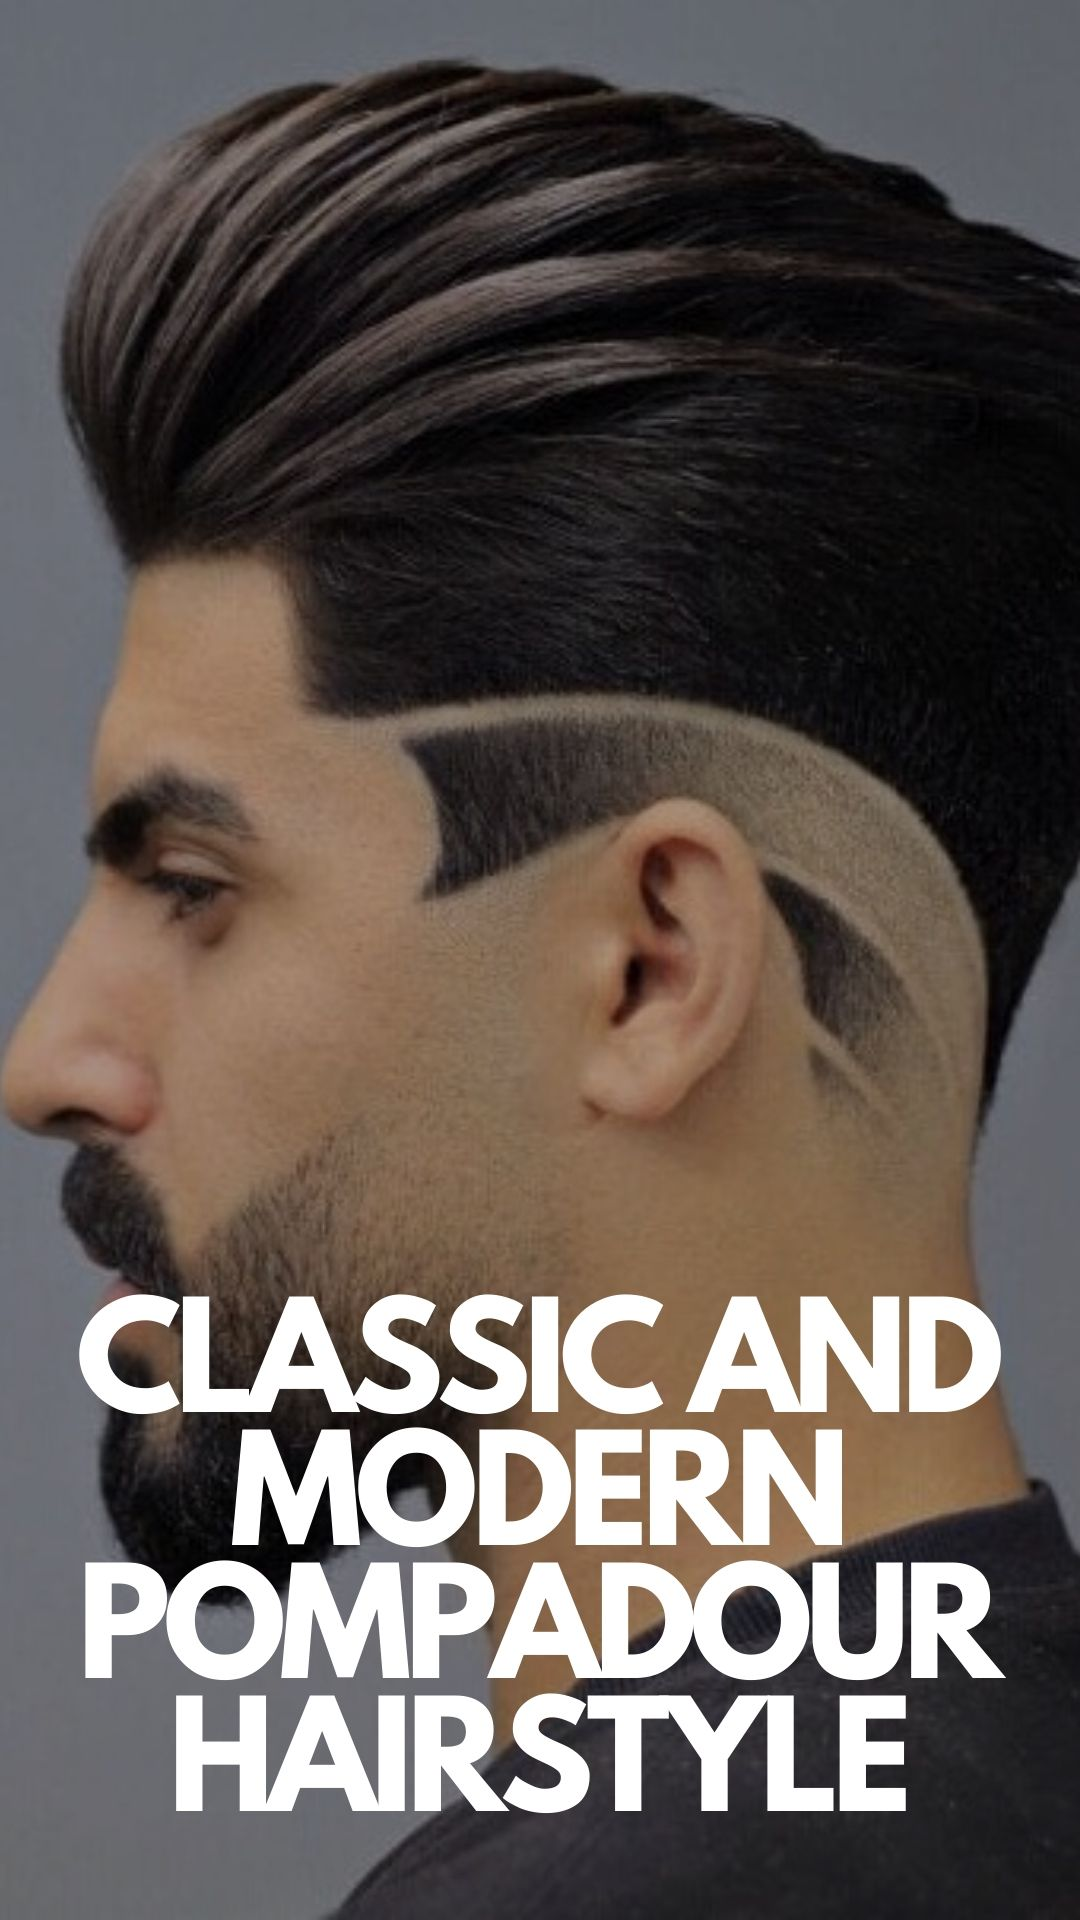 10 Modern and Classic Pompadour Hairstyles